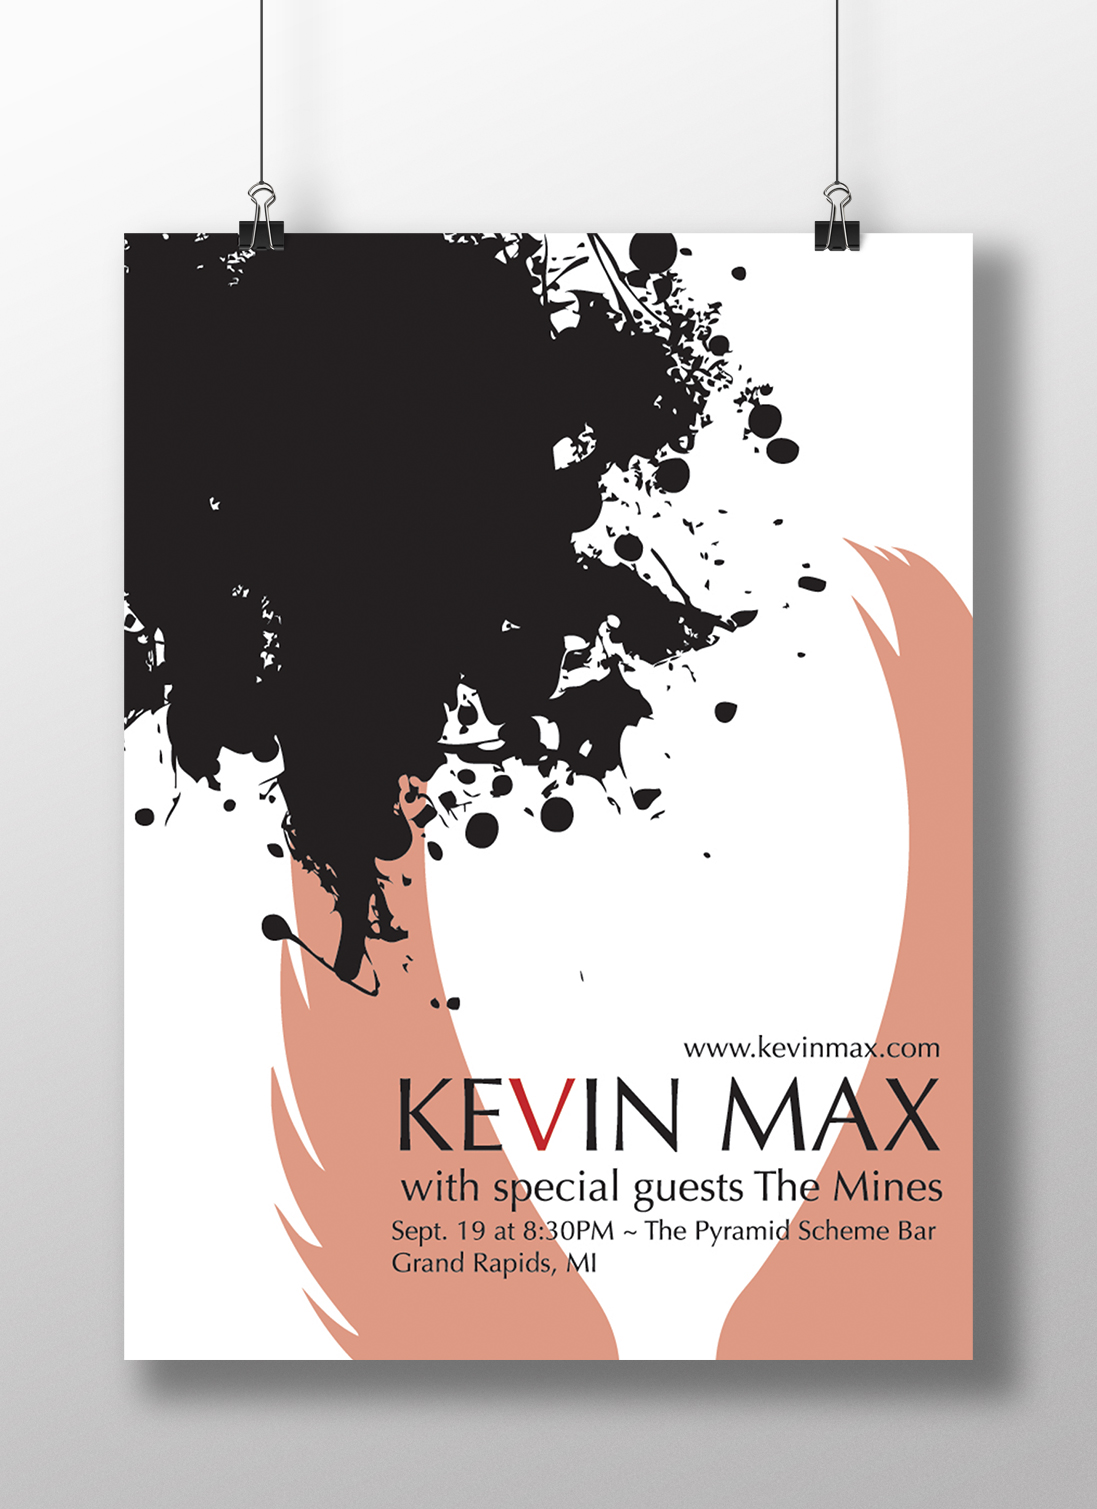 Kevin Max Poster